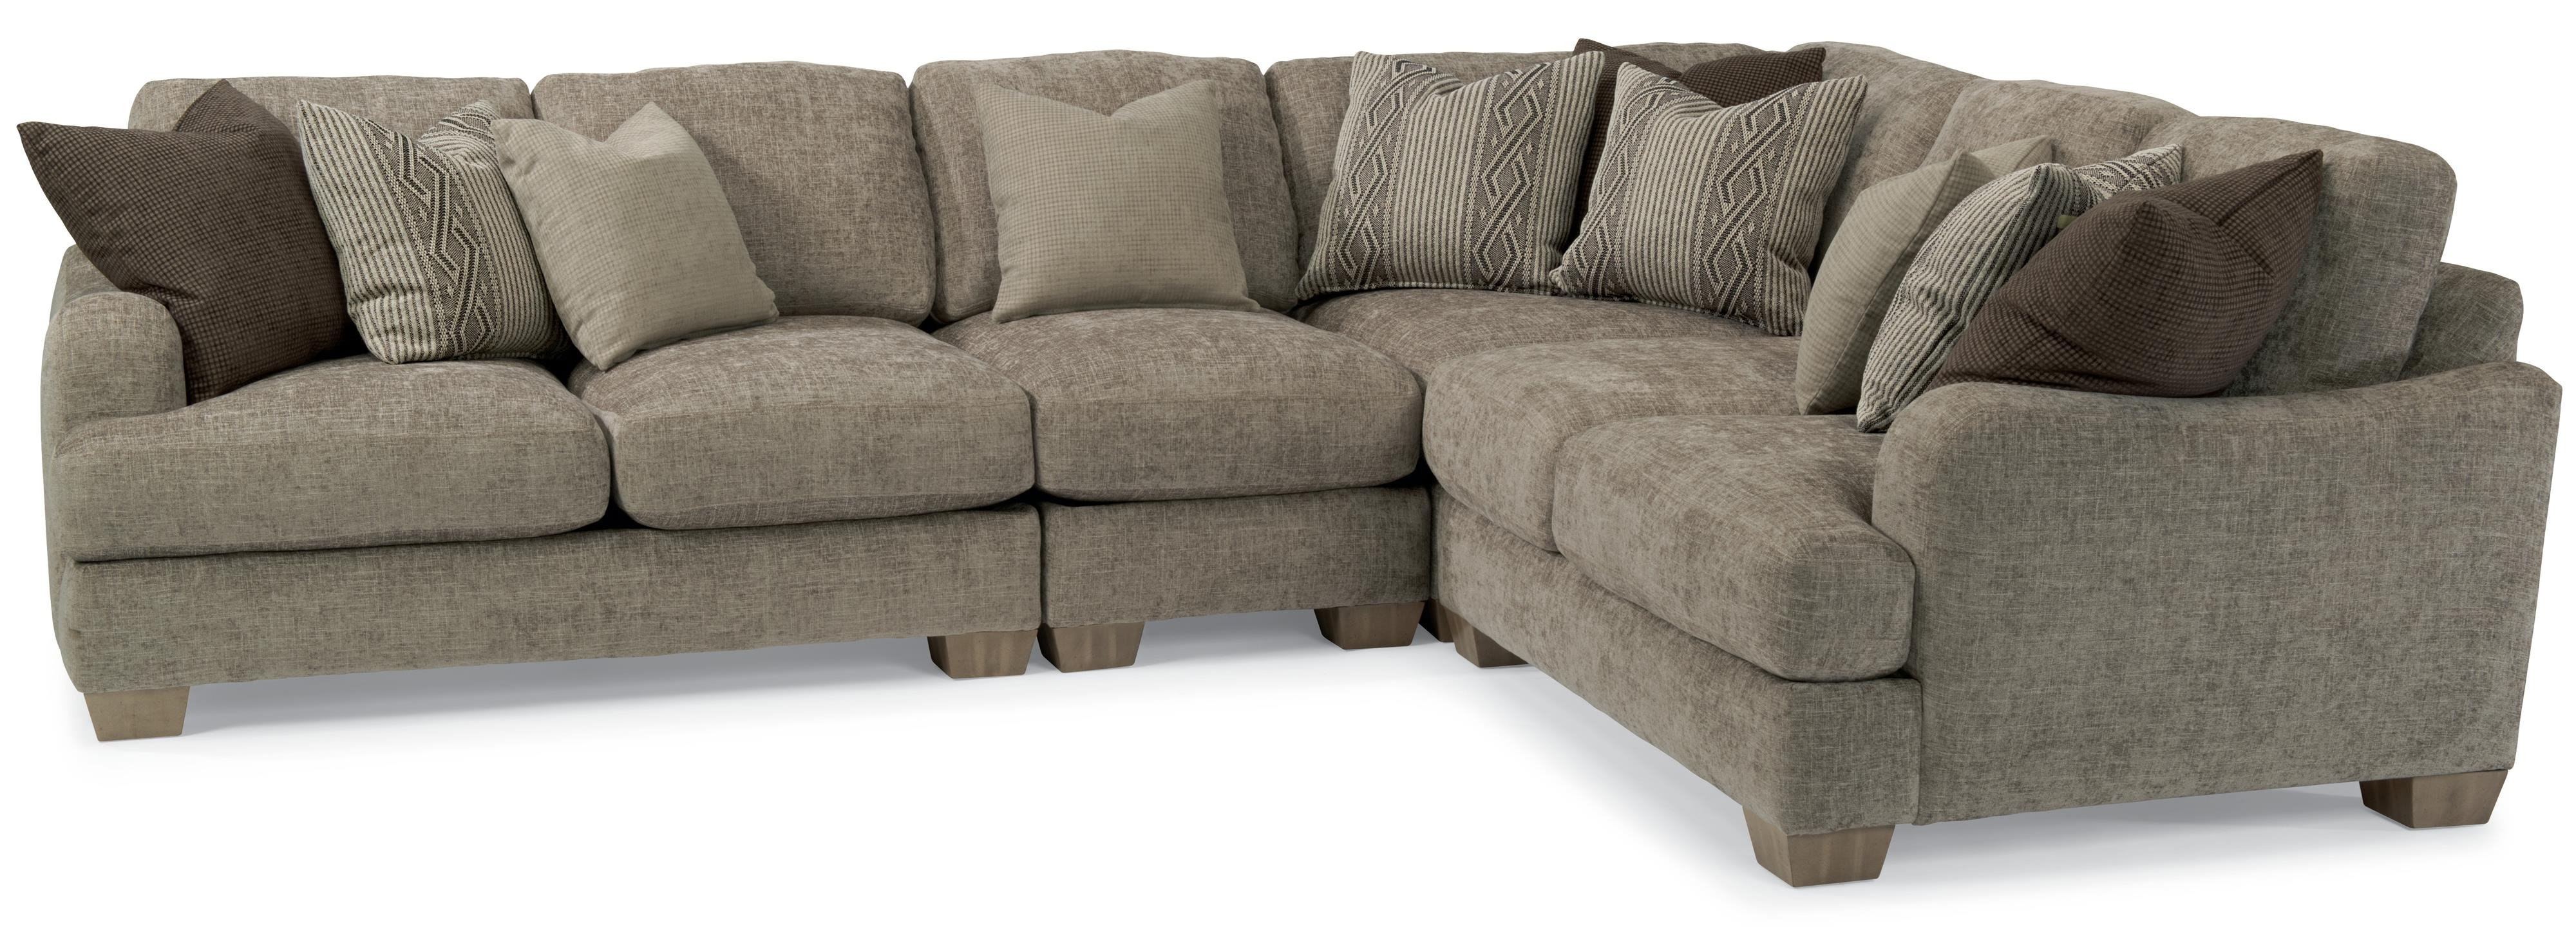 Nova Scotia Sectional Sofas In 2018 Vanessa Sectional Sofa With Loose Pillow Backflexsteel (View 3 of 20)